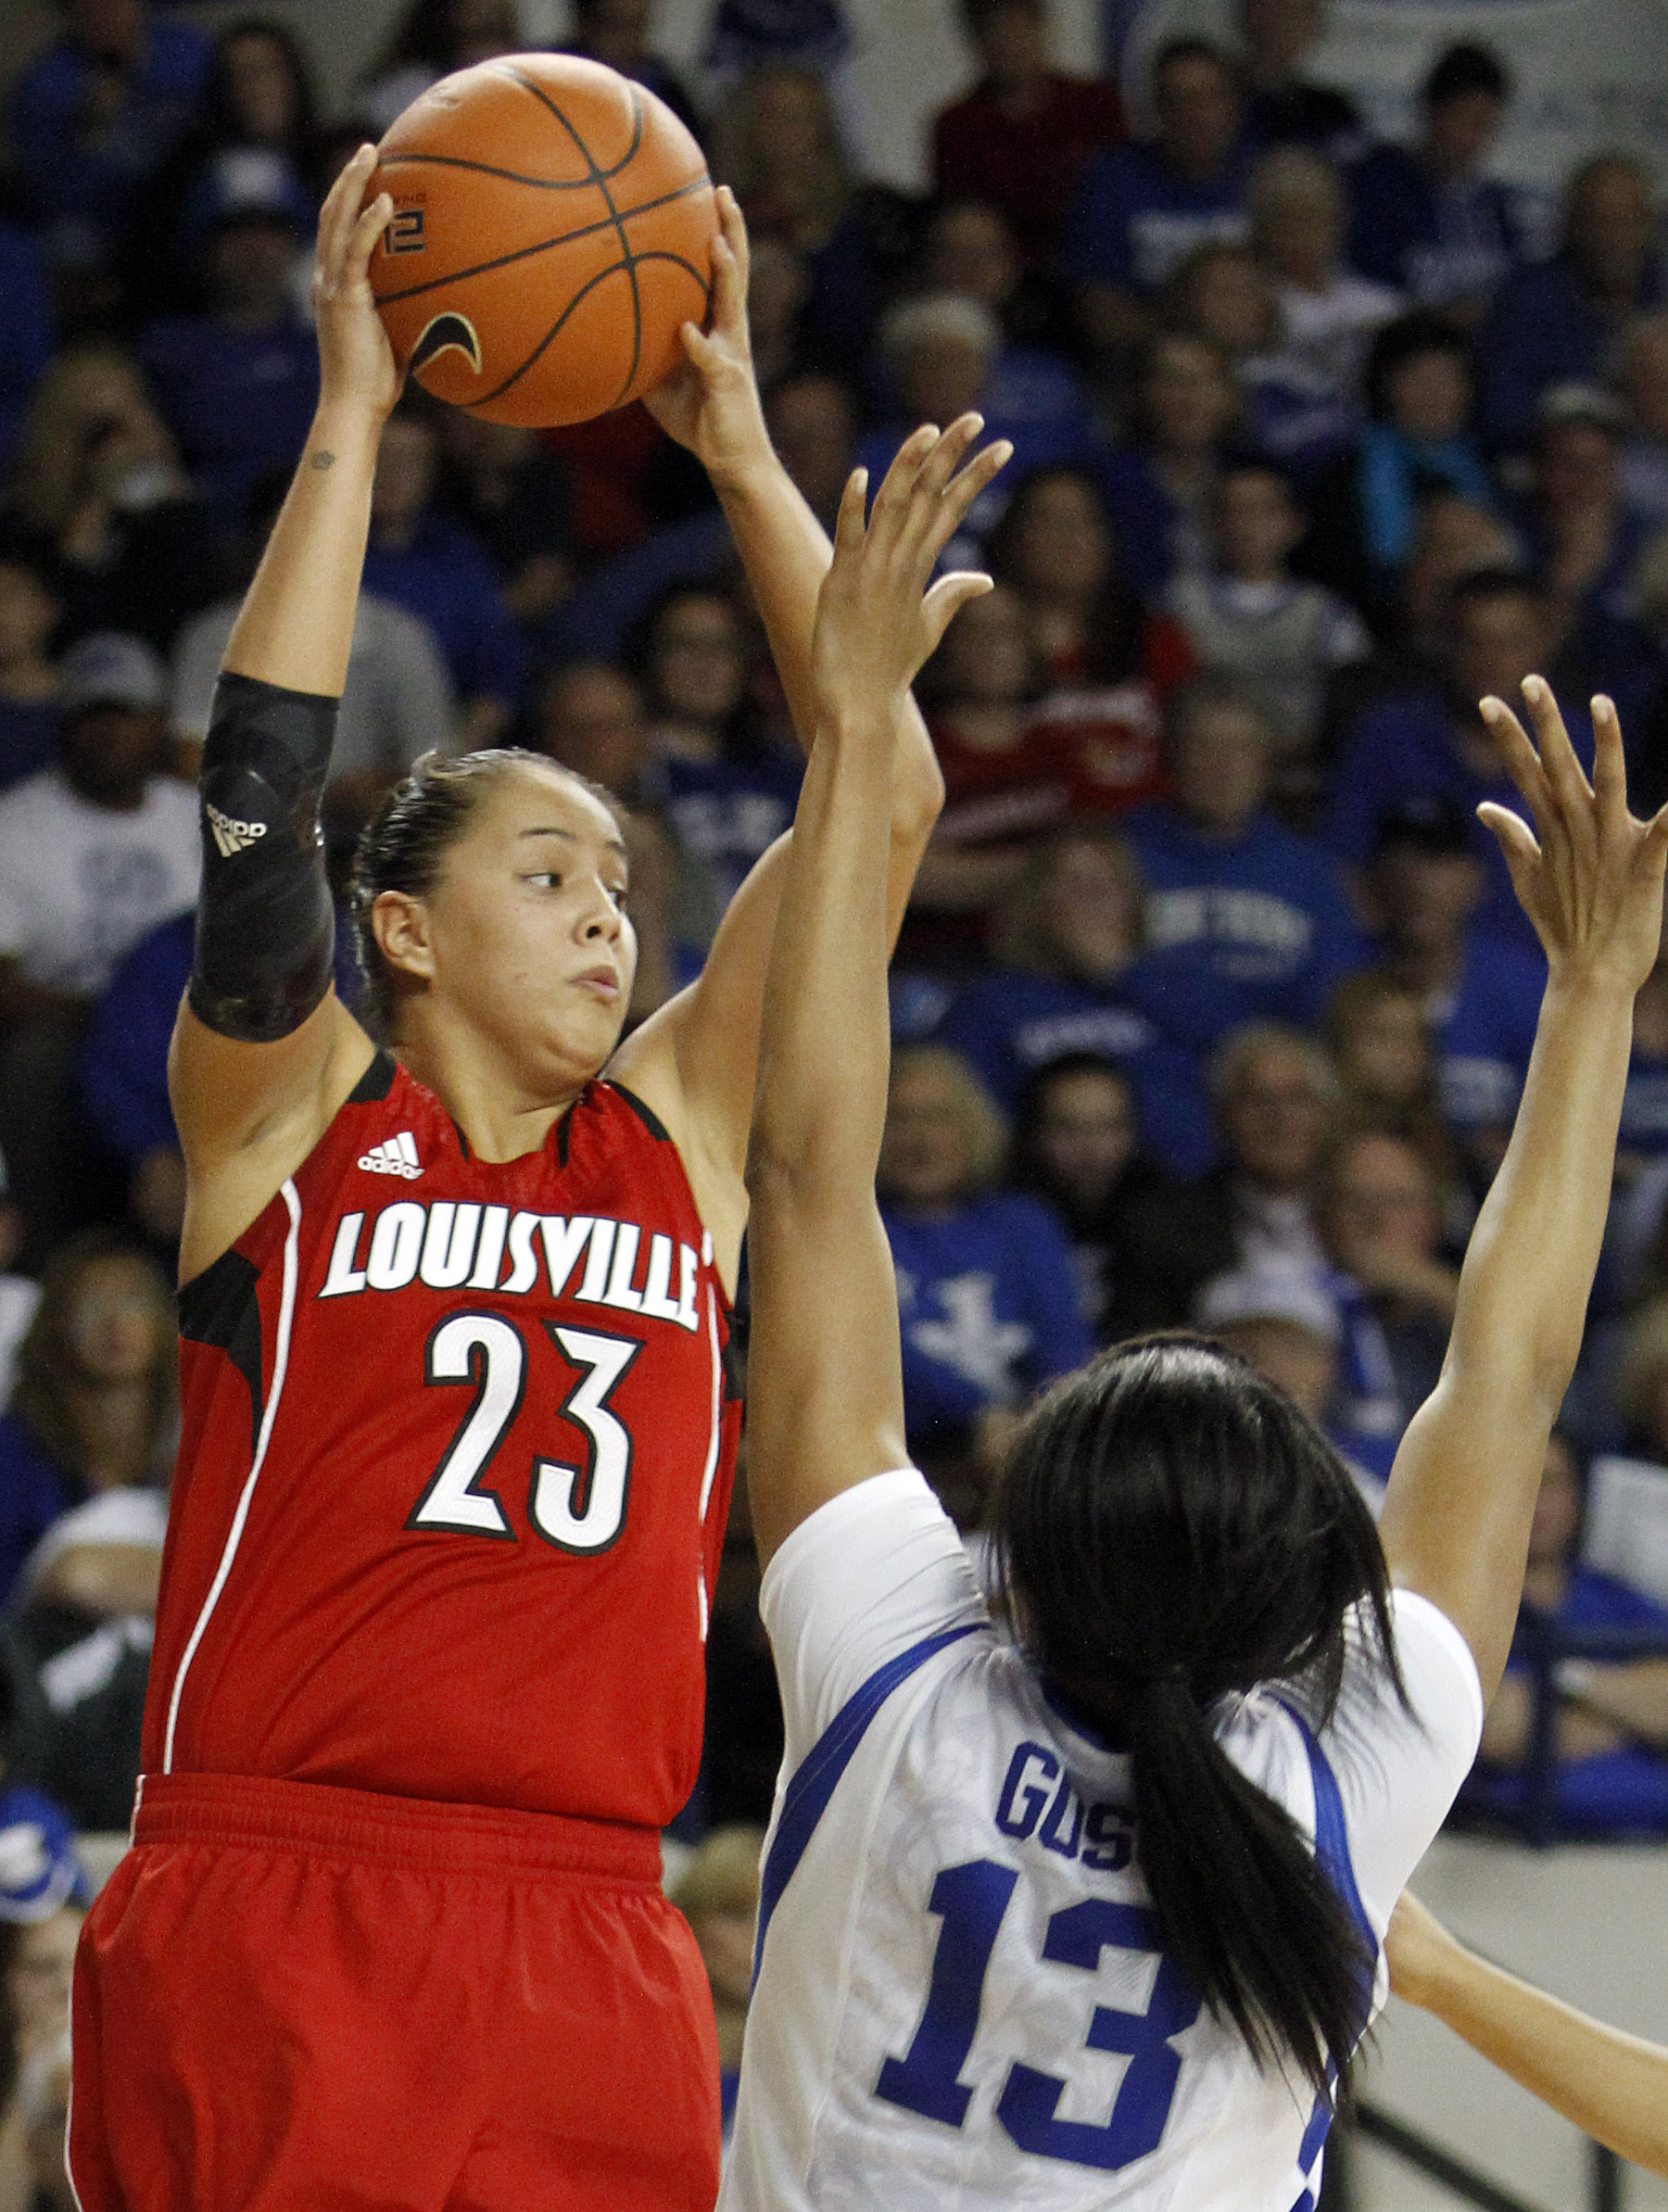 Louisville's Shoni Schimmel (23) looks to pass while under pressure from Kentucky's Bria Goss during the second half of an NCAA college basketball game, Sunday, Dec. 1, 2013, in Lexington, Ky. Kentucky won 69-64